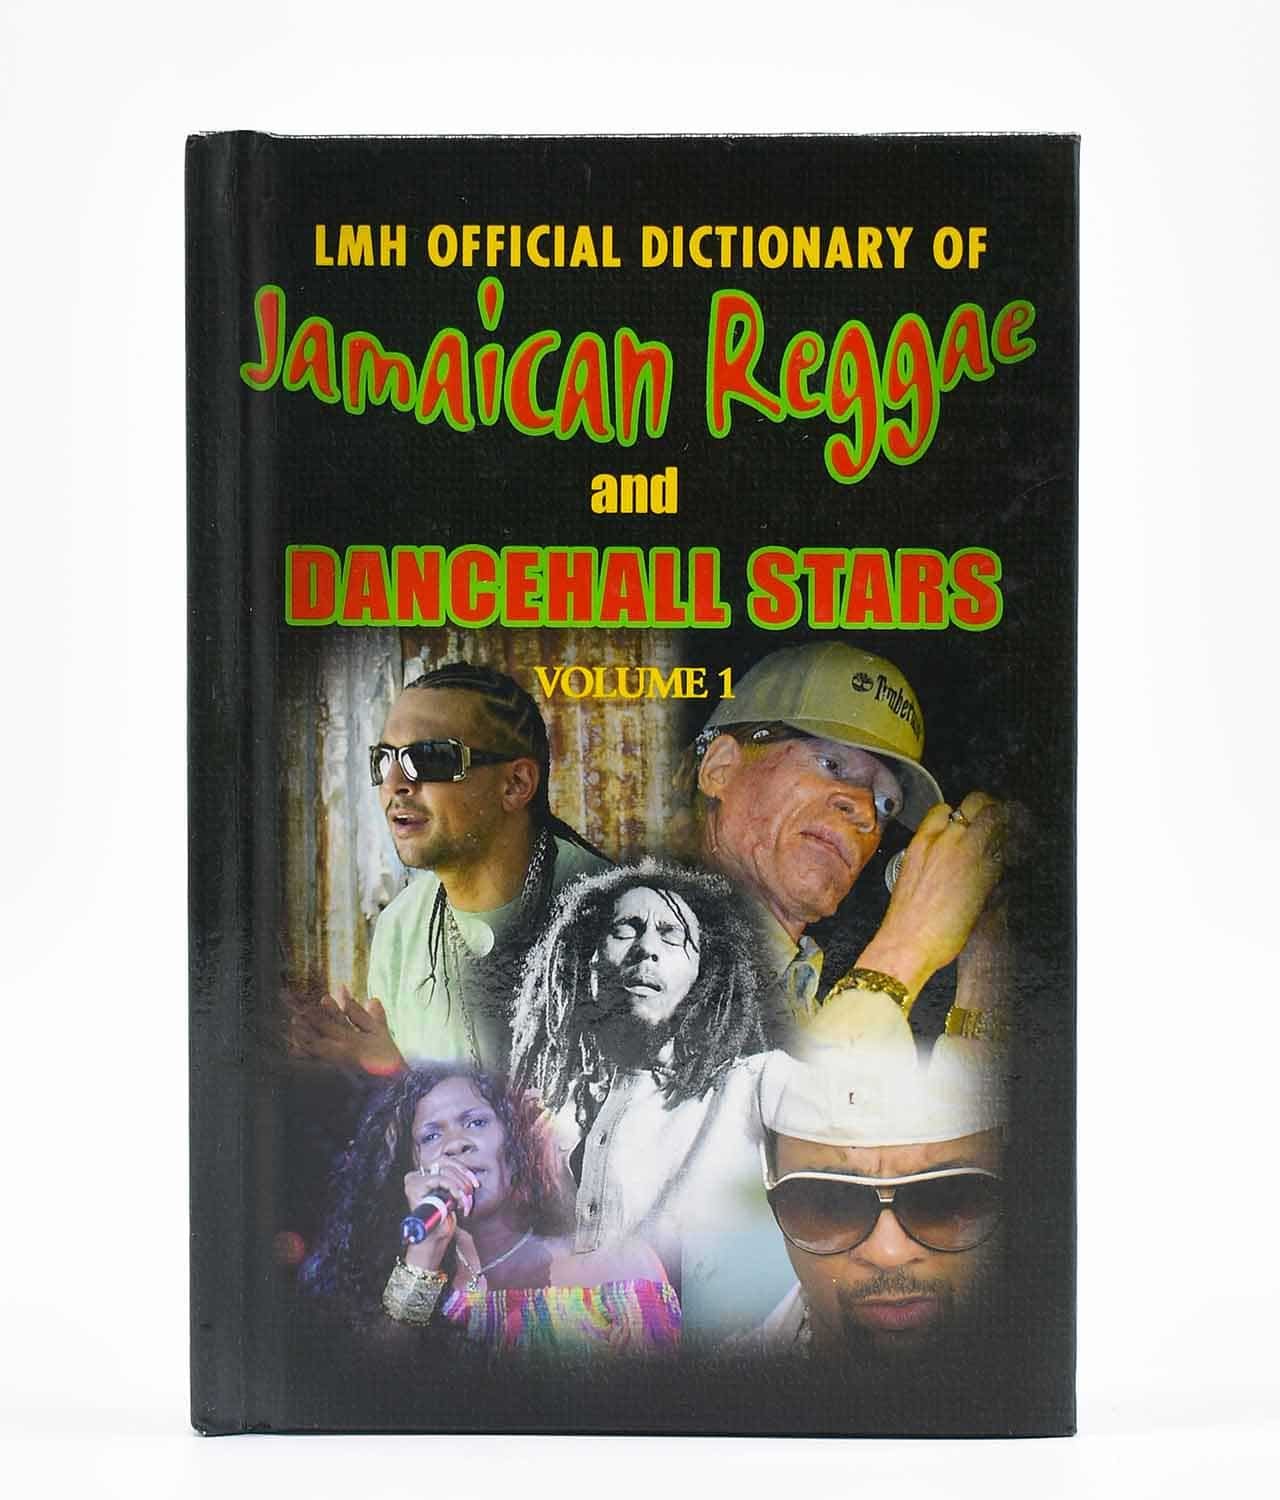 Jamaican Reggae Dance Hall (1bk)- Trendy - Buy Now!